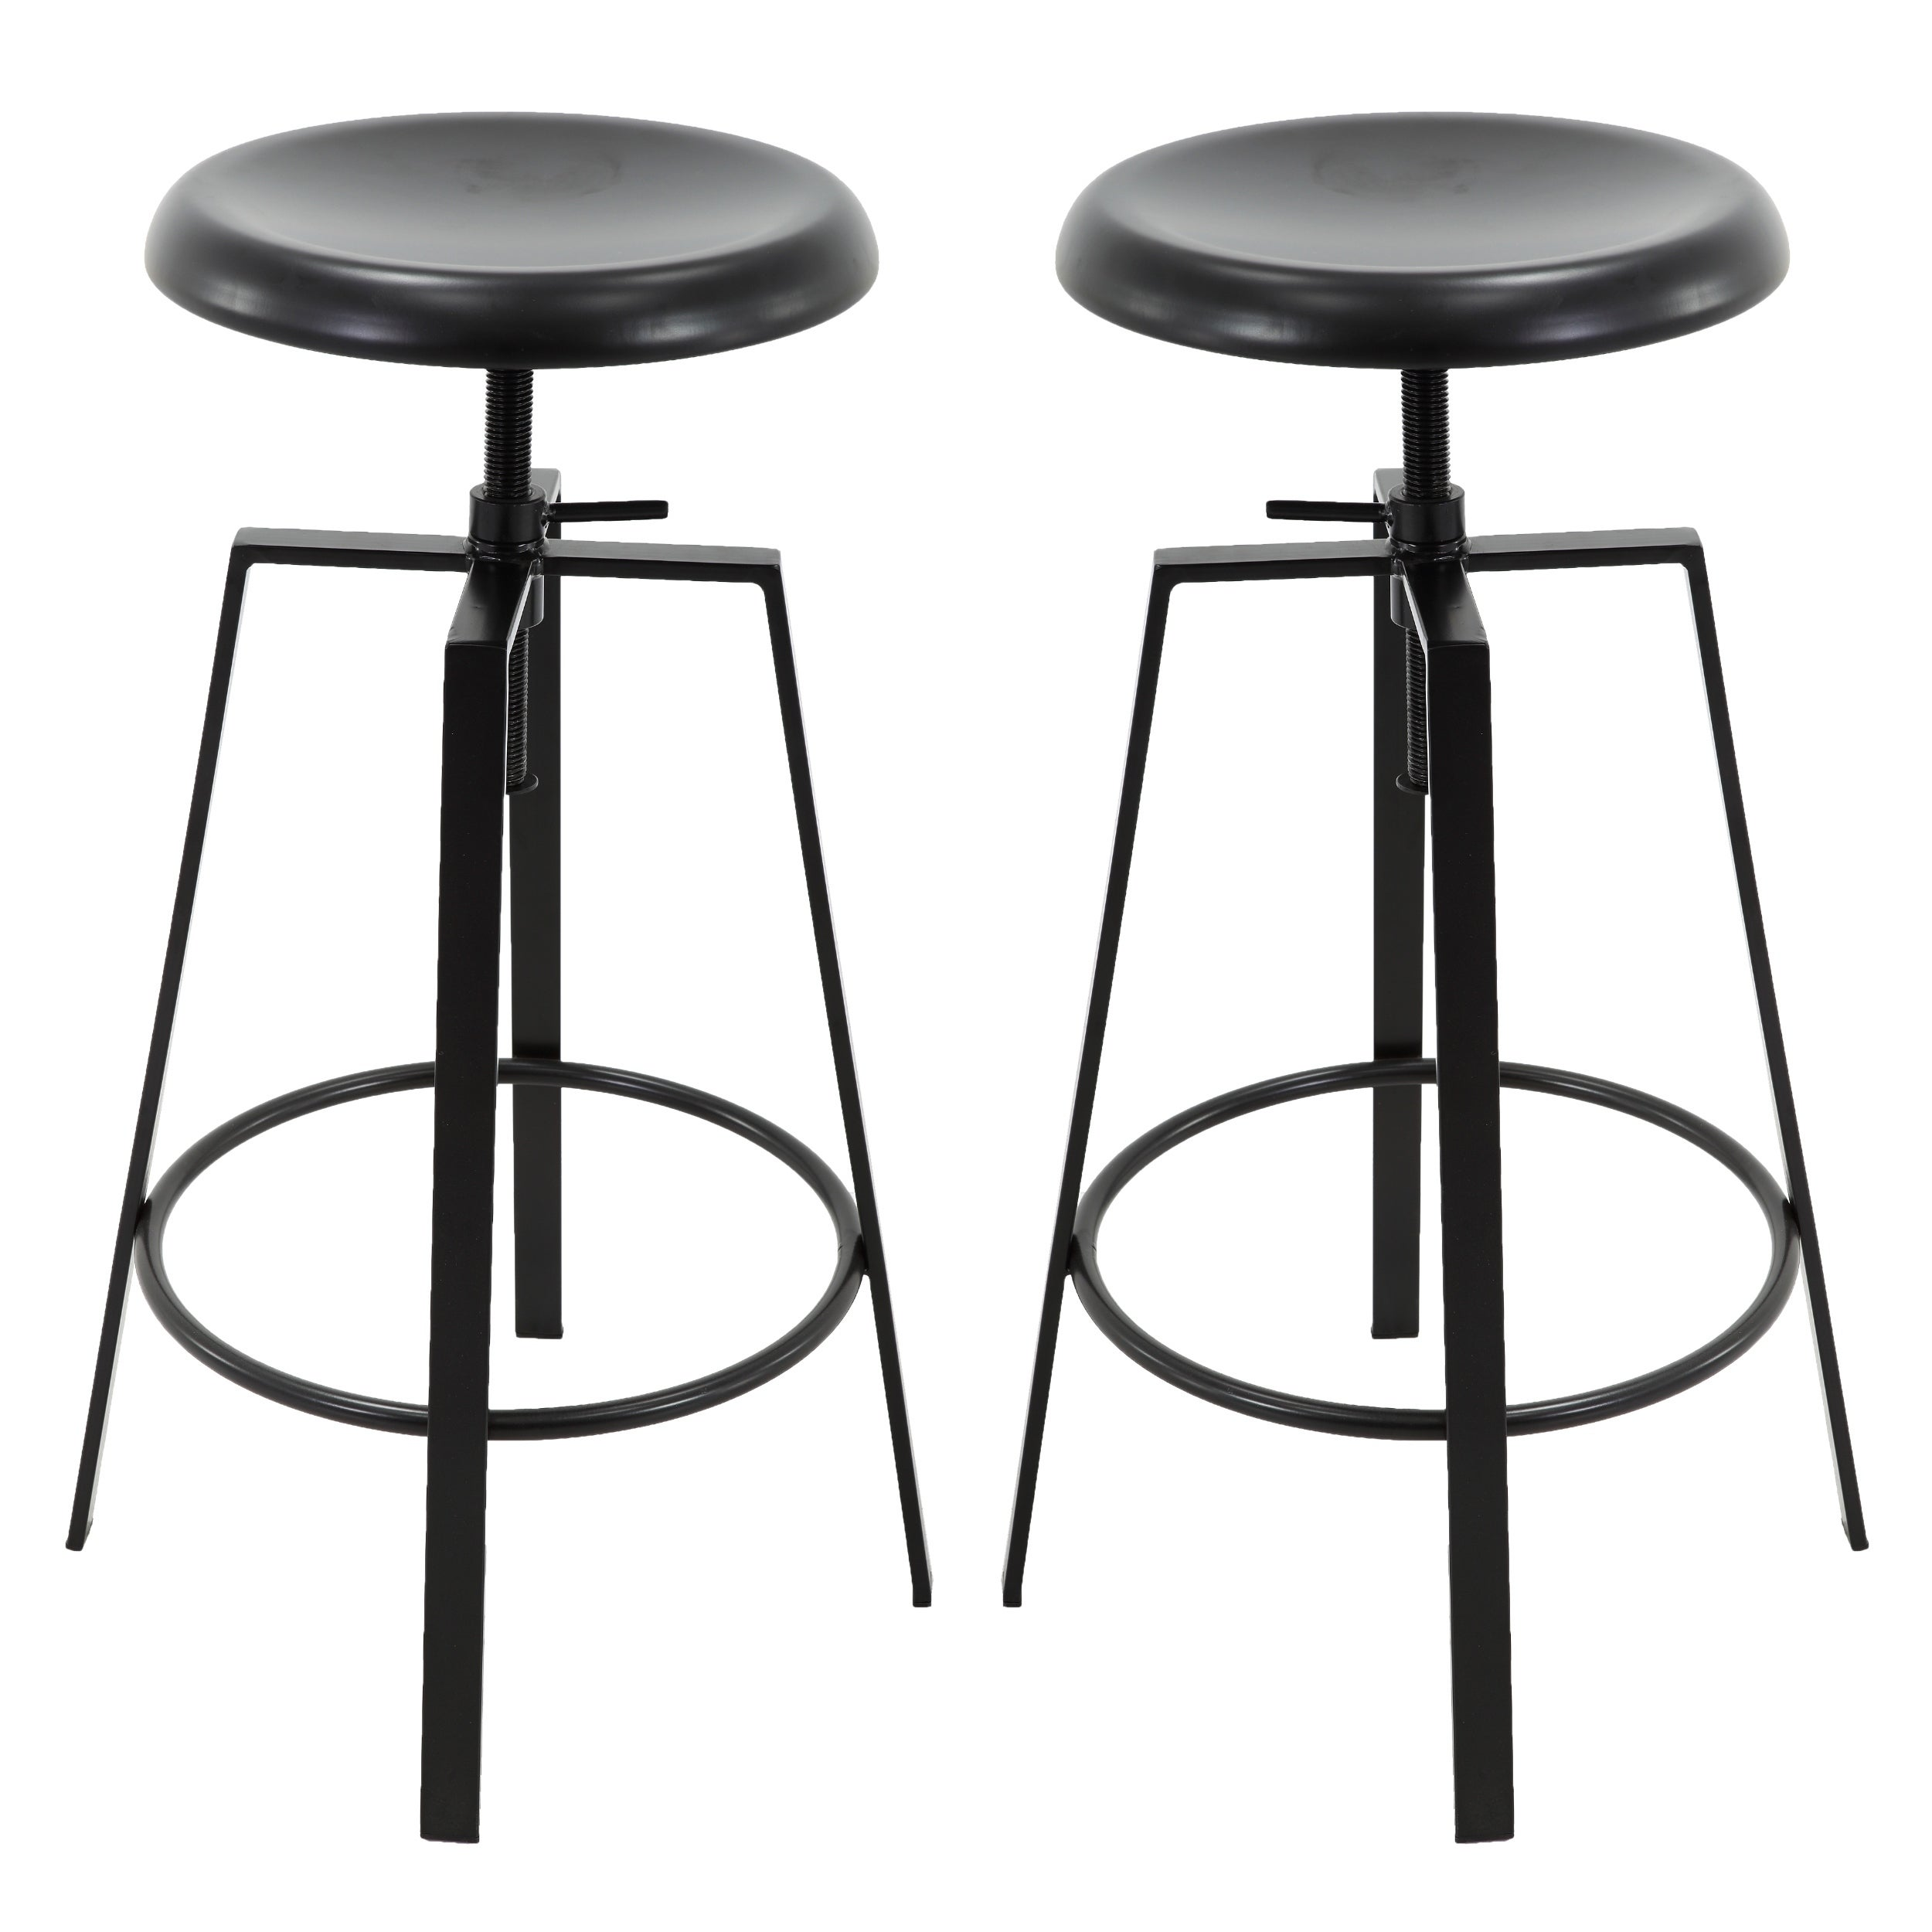 Surprising Backless Round Seat Adjustable Height Swivel Bar Stools Set Of 2 Black Machost Co Dining Chair Design Ideas Machostcouk